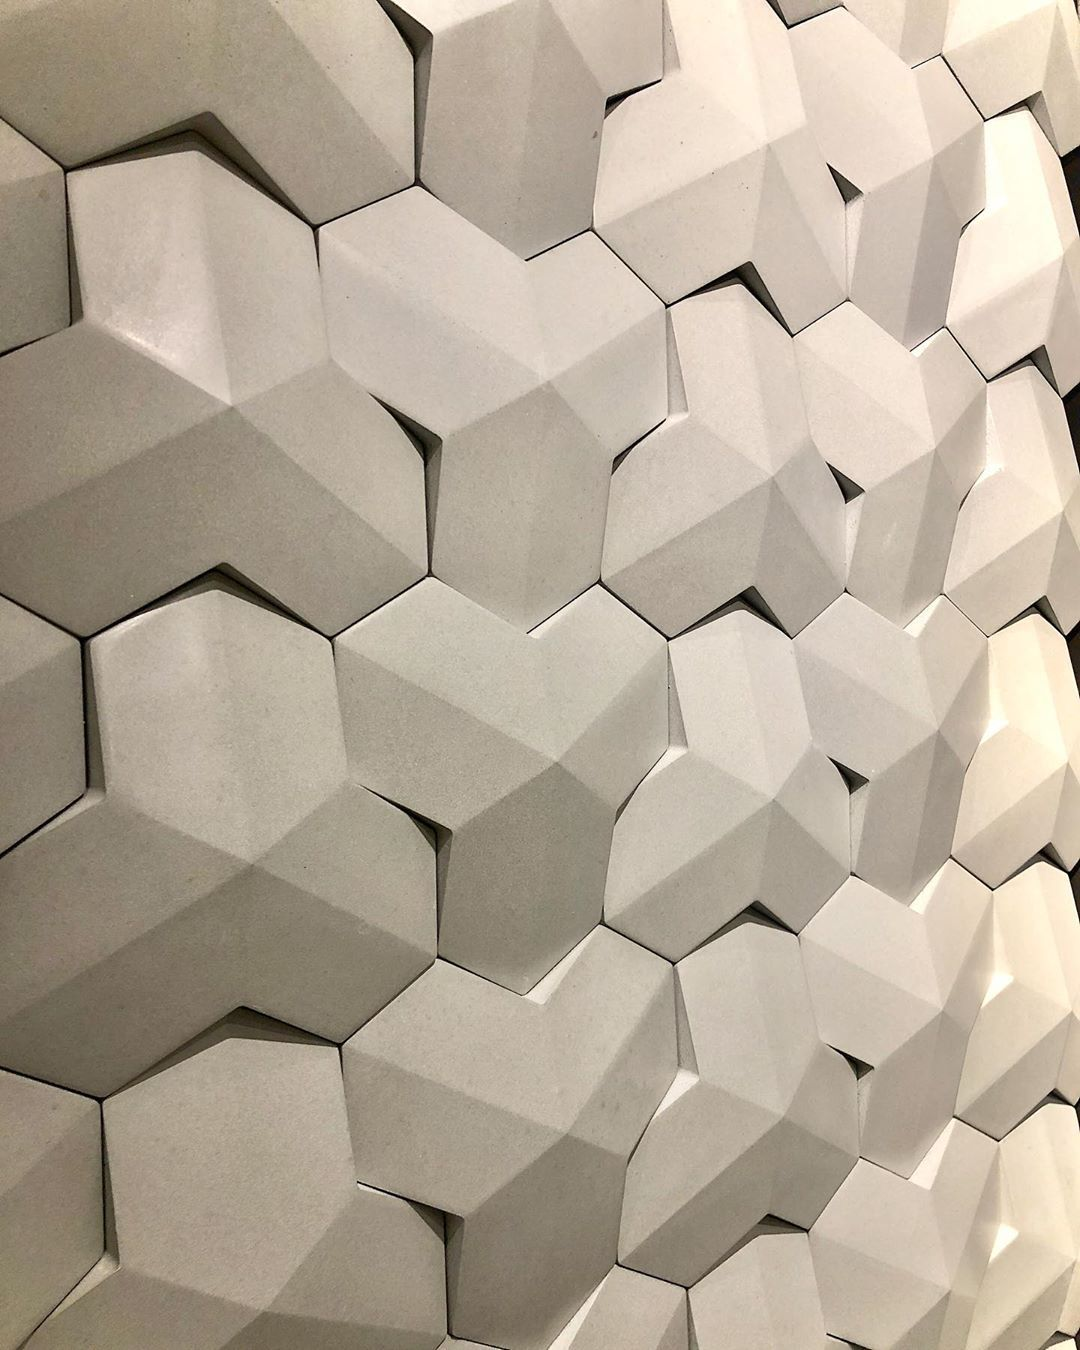 Concrete Wall Tile For Feature Wall Forg3d 2020